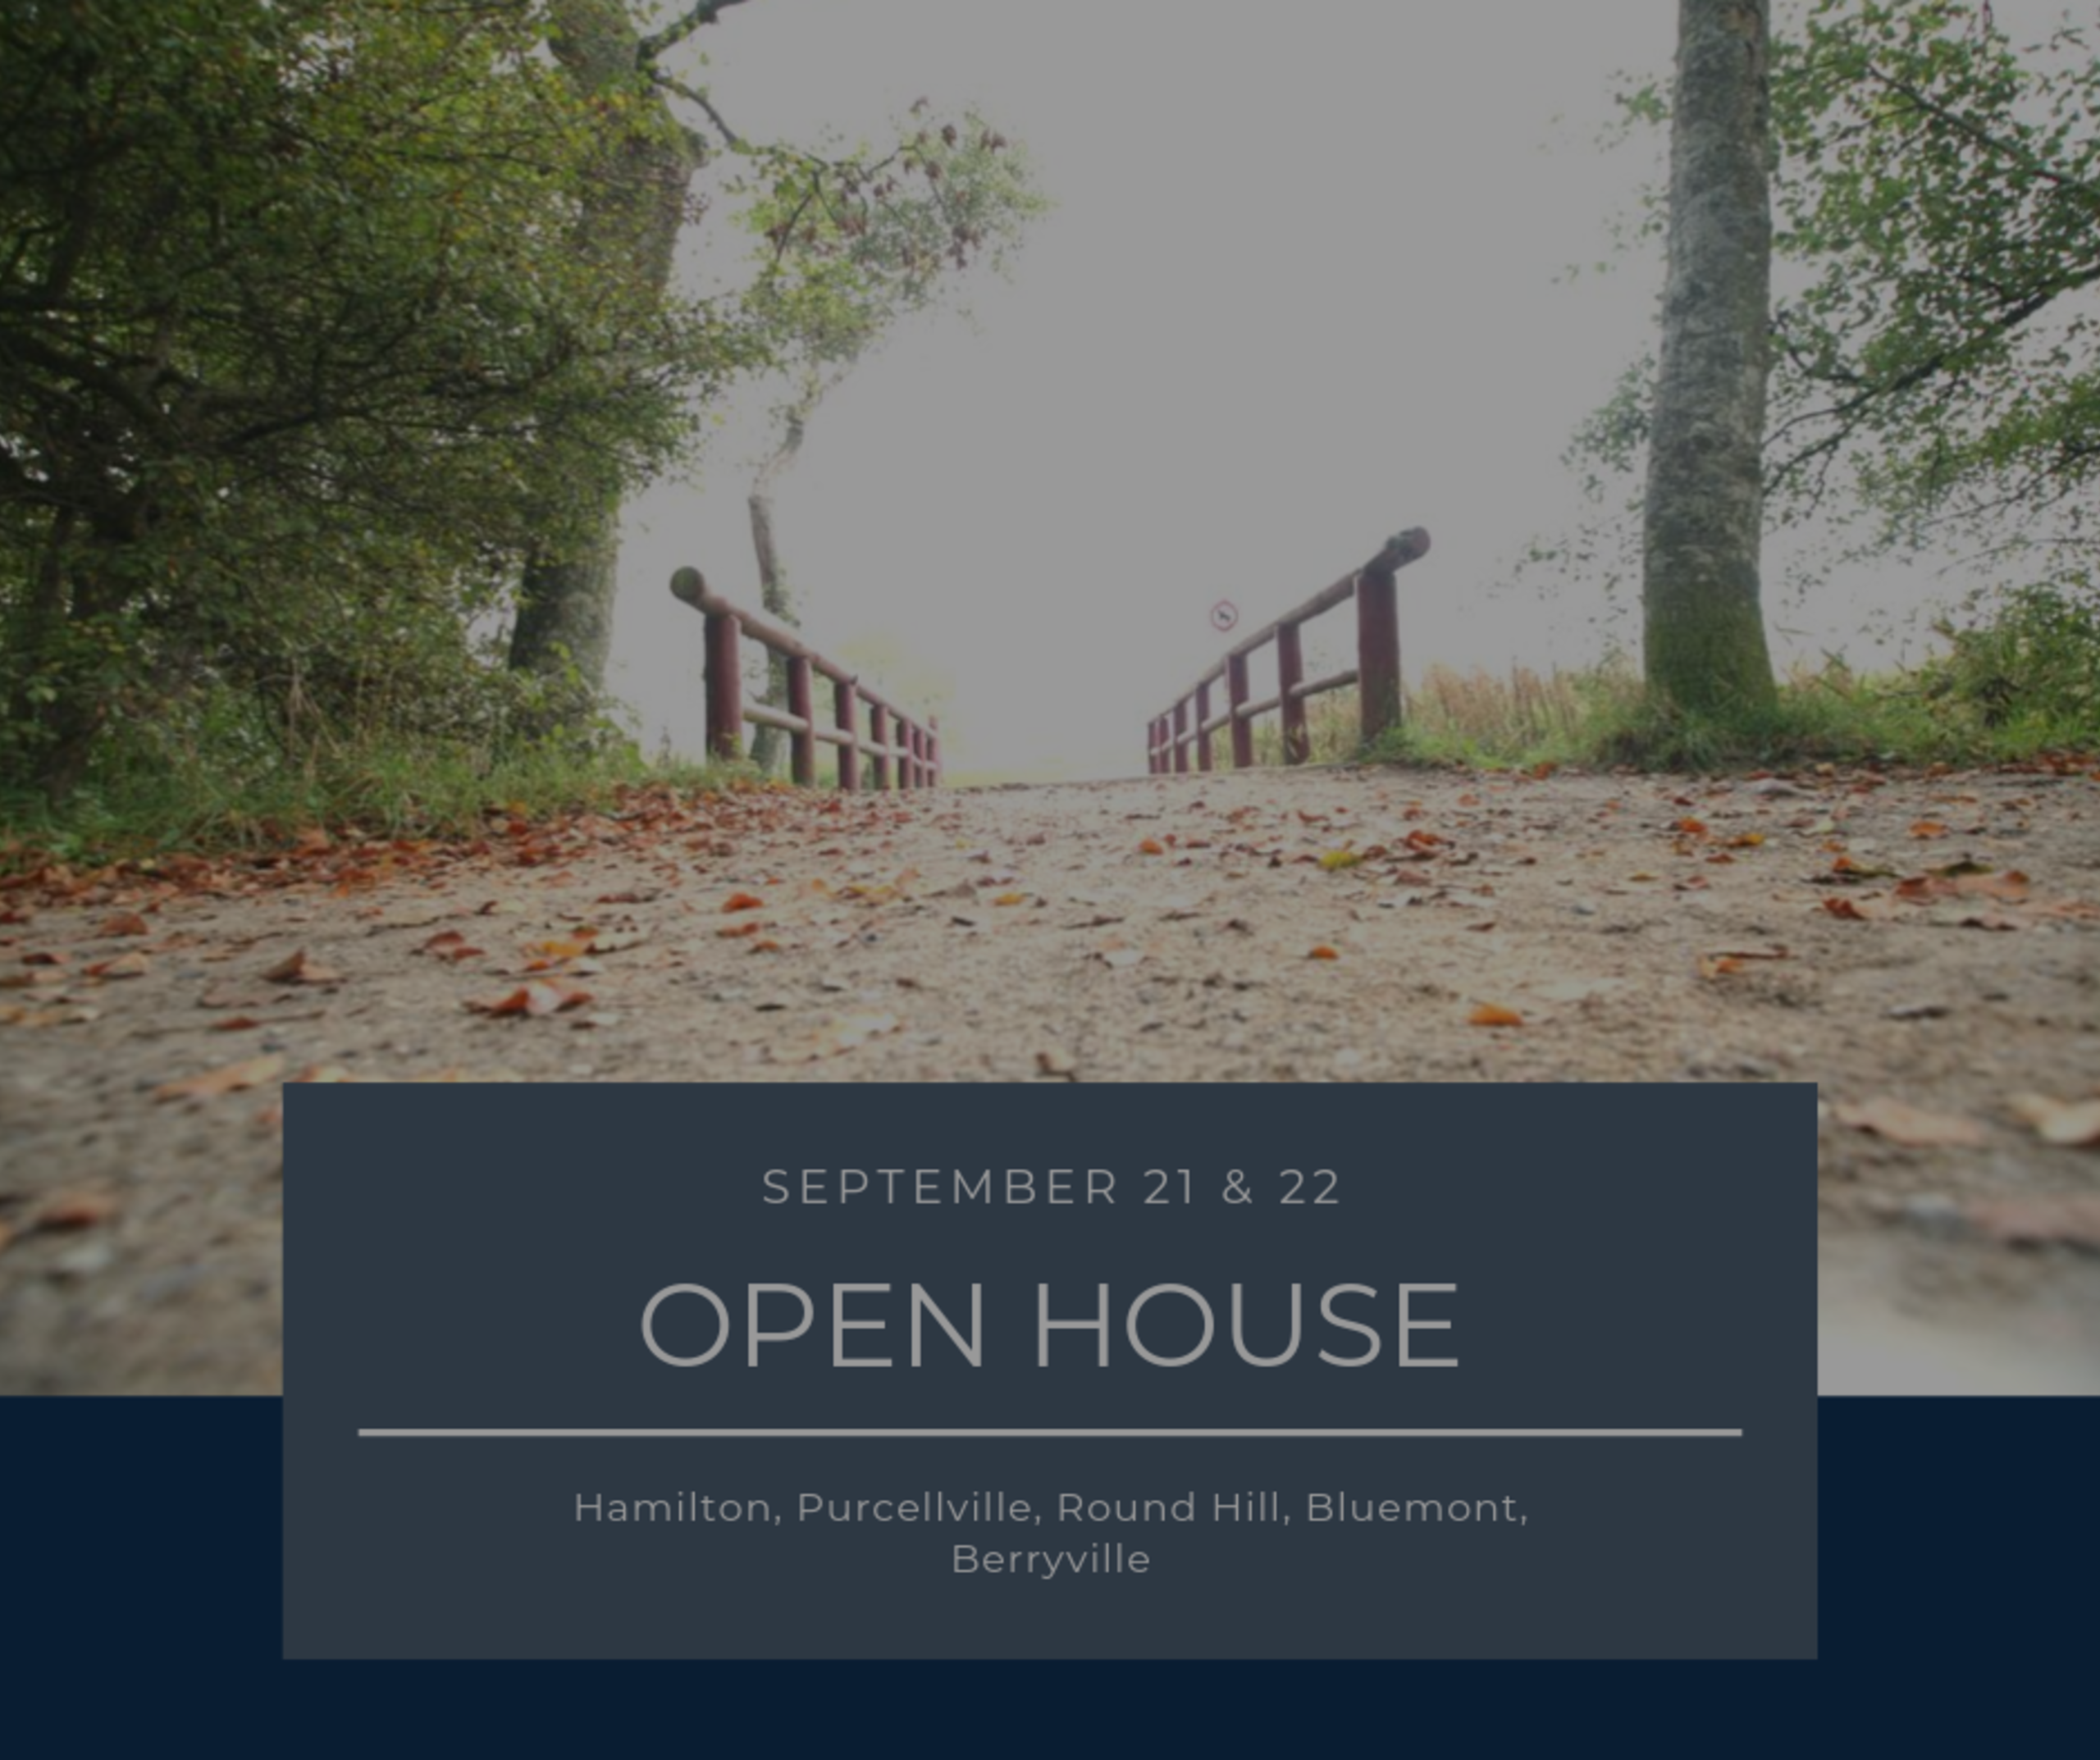 Open House List 9/21/19 – 9/22/19